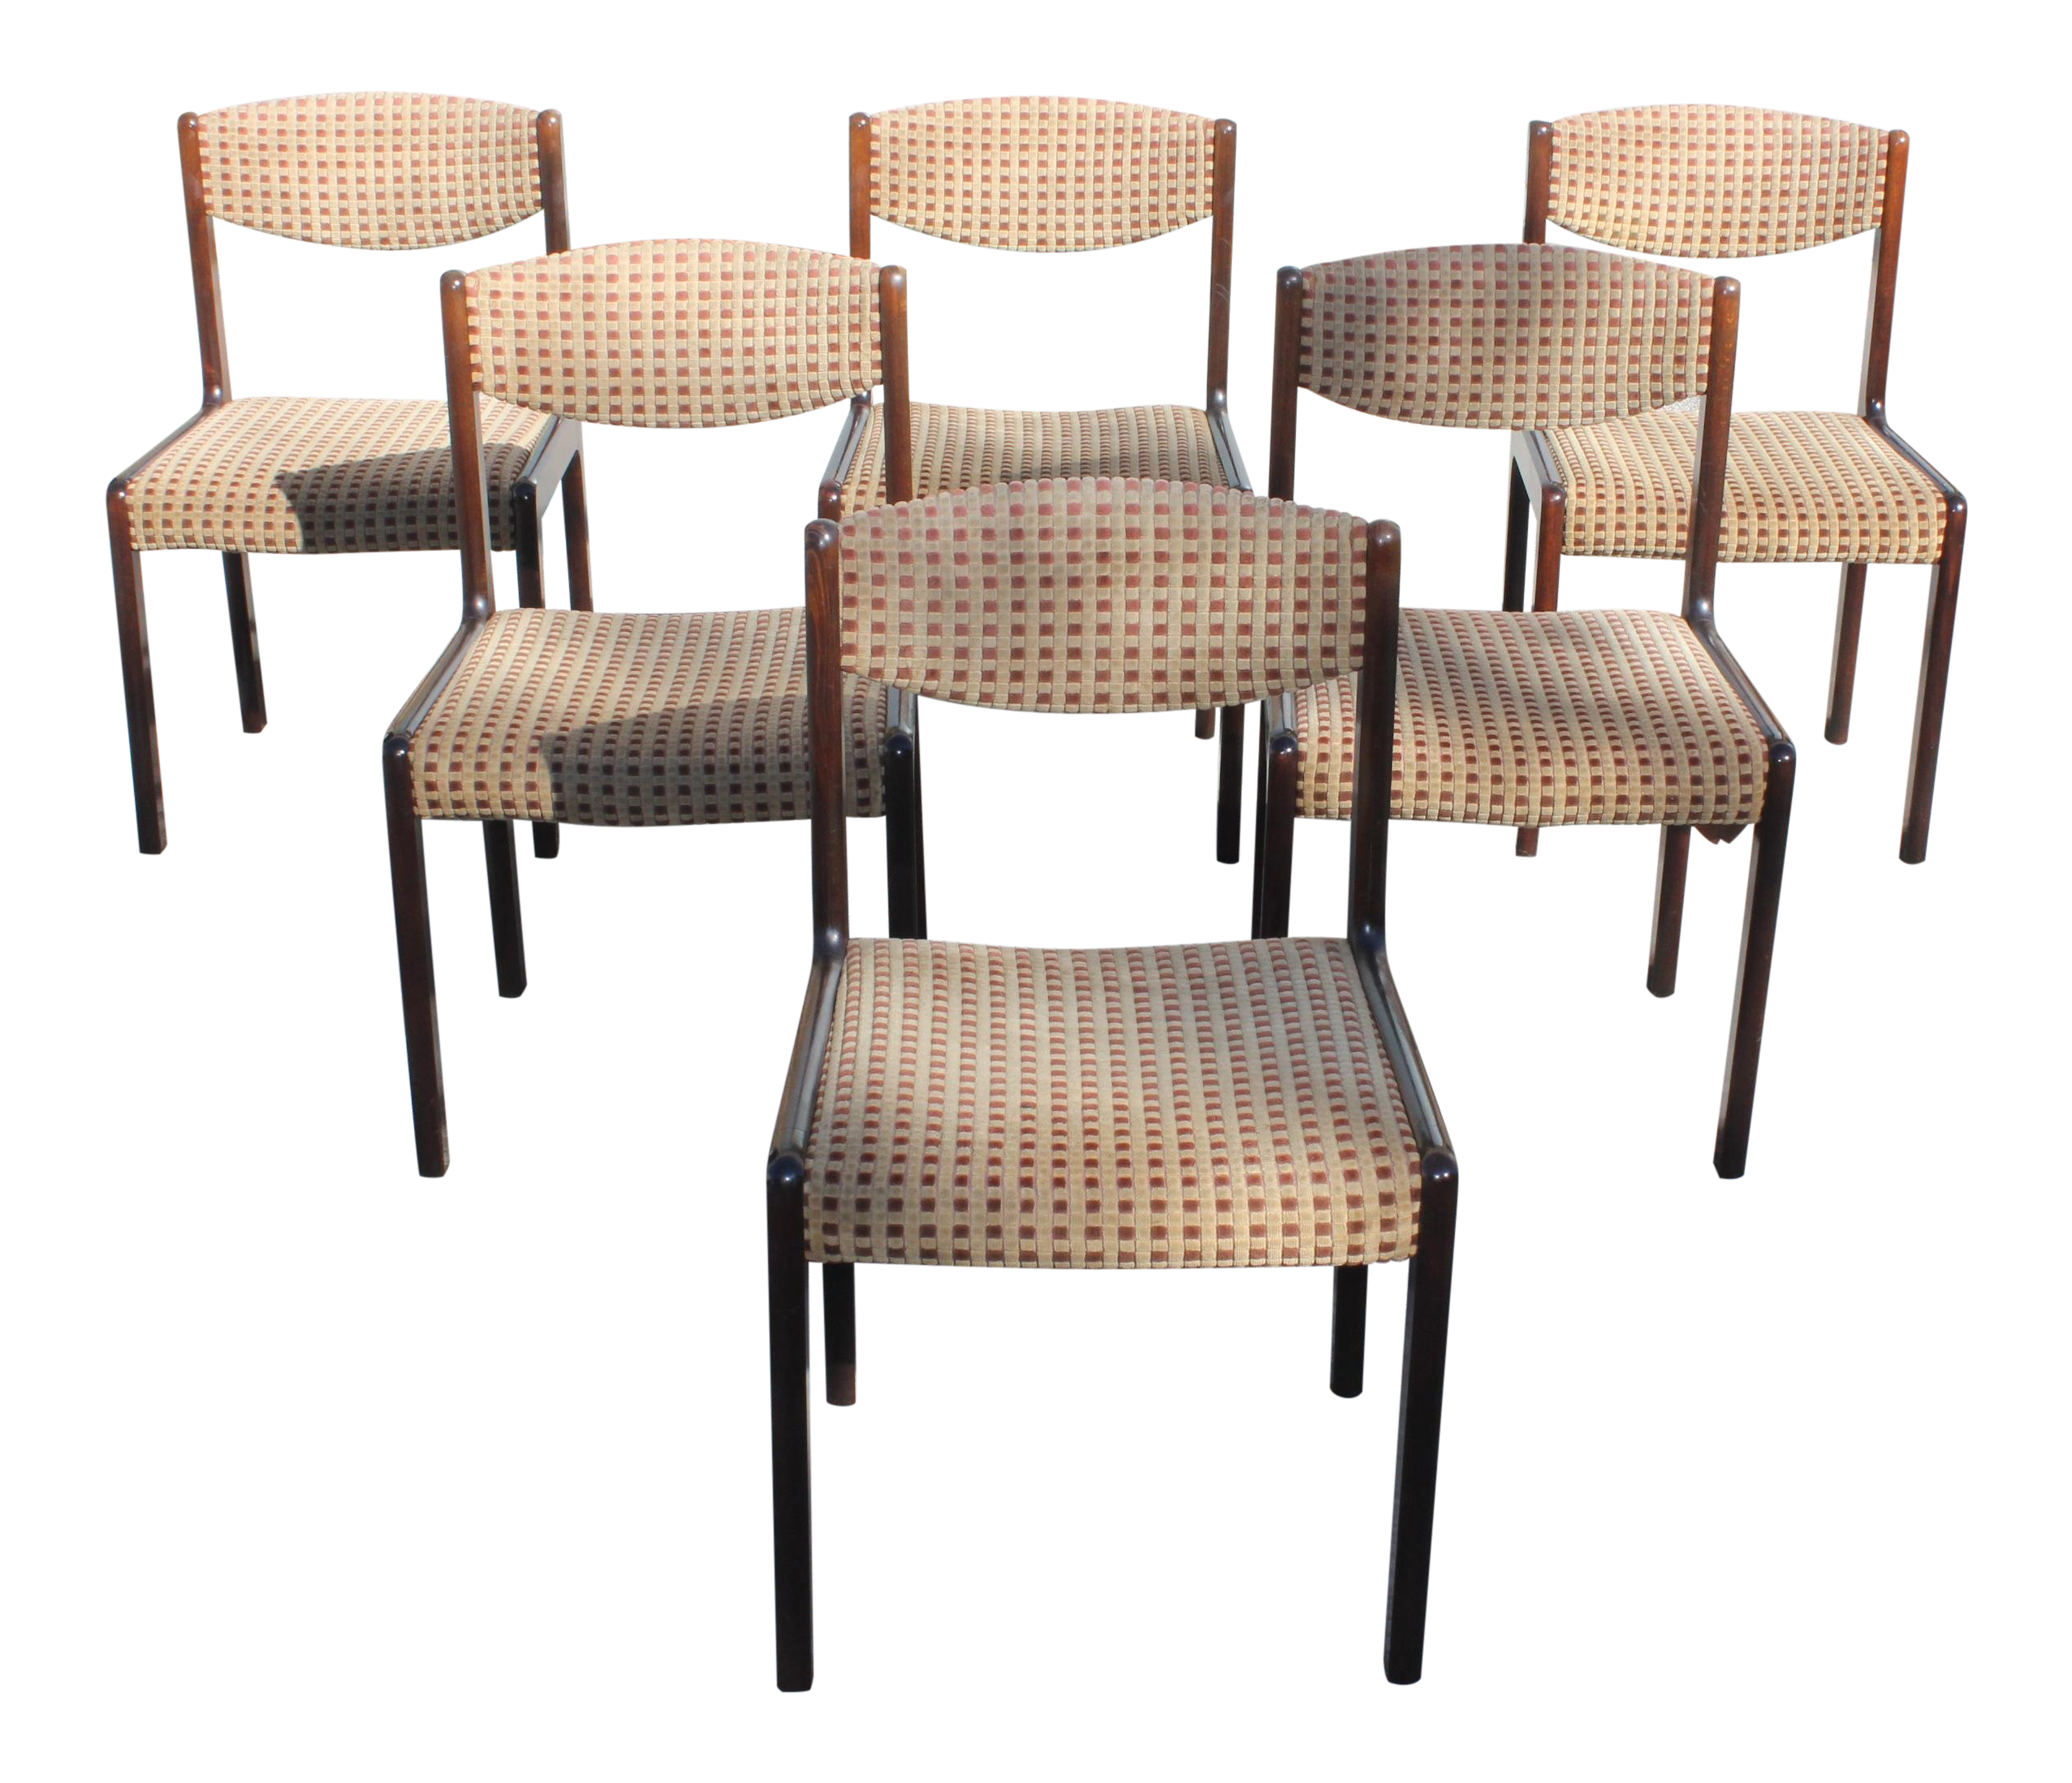 Art deco modern furniture Famous Movie 1940s Vintage French Art Deco Modern Solid Mahogany Dining Chairs Set Of Chairish Chairish 1940s Vintage French Art Deco Modern Solid Mahogany Dining Chairs